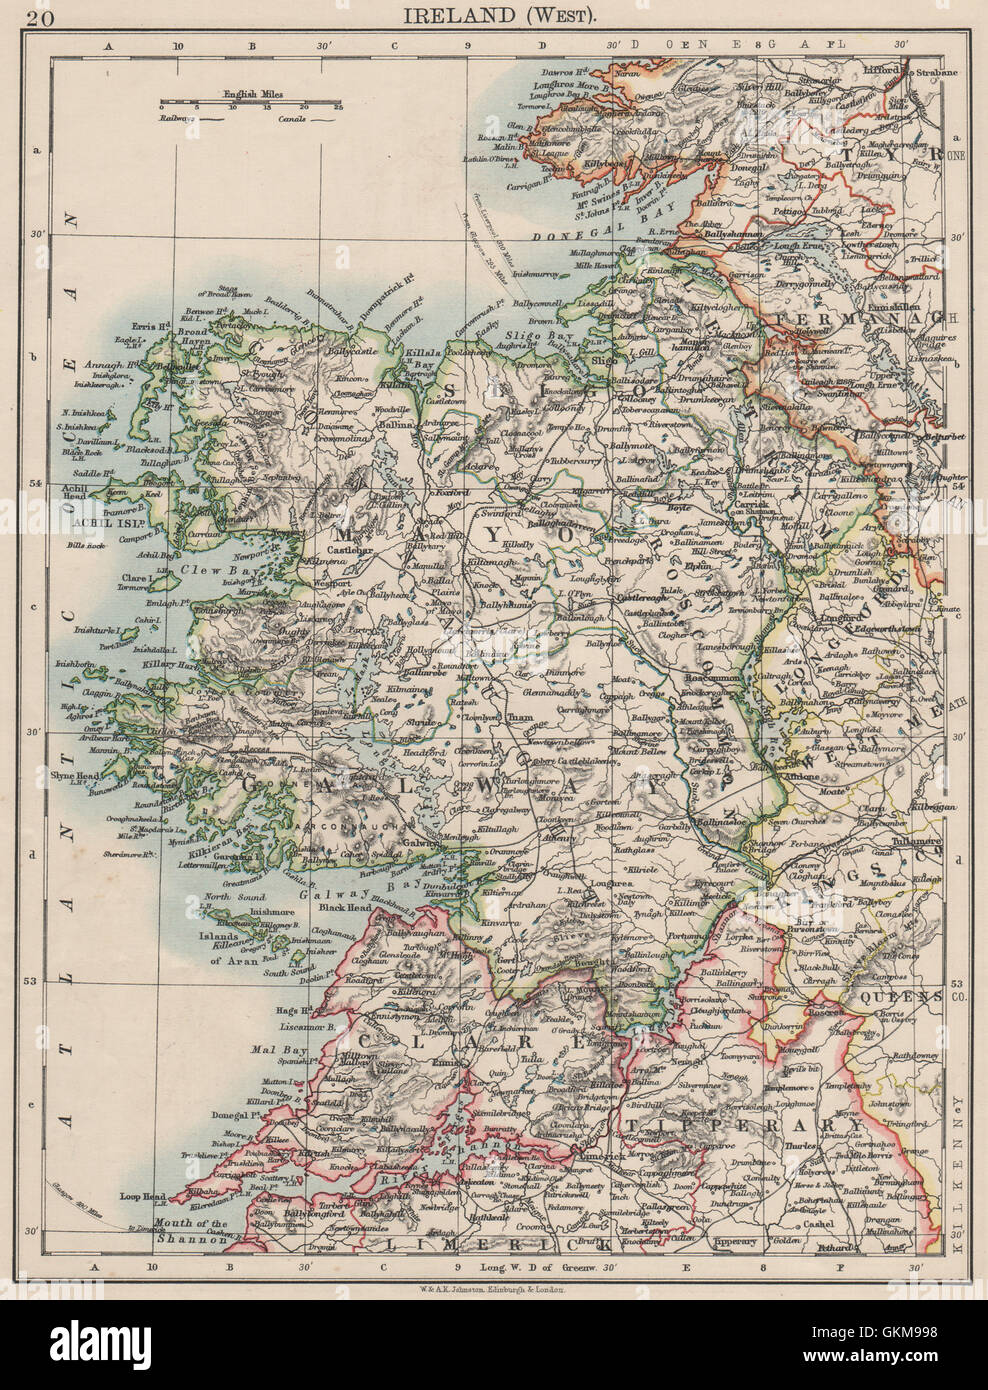 Map Of The West Of Ireland.Connacht Connaught Galway Mayo Sligo Leitrim West Ireland Stock